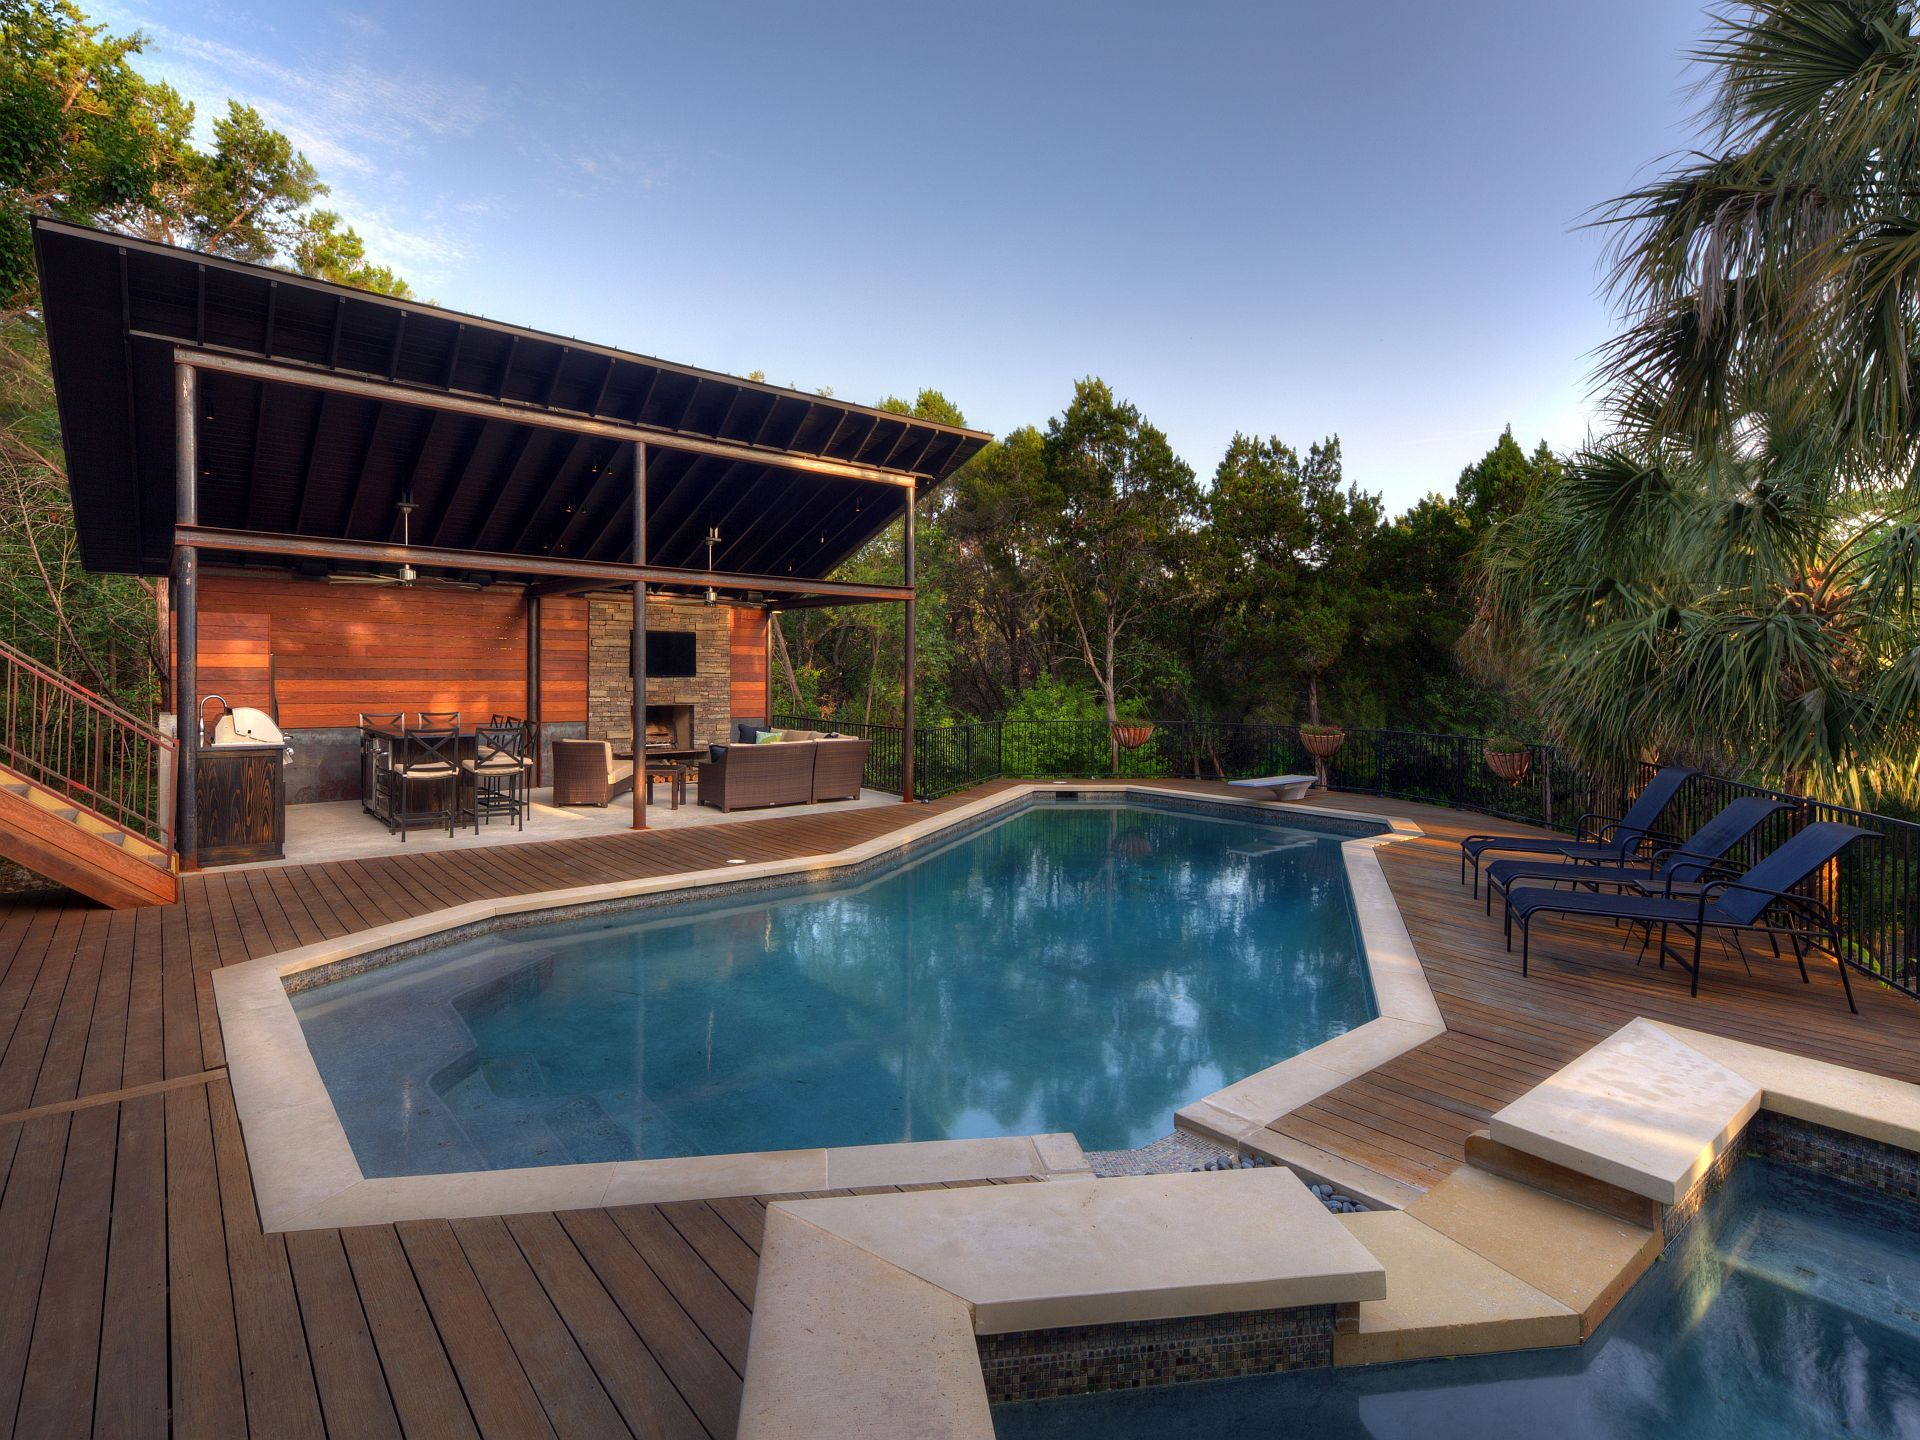 Image Result For Modern Outdoor Kitchens Pool Modern Outdoor Kitchen Dream Backyard Patio Outdoor Pool Area